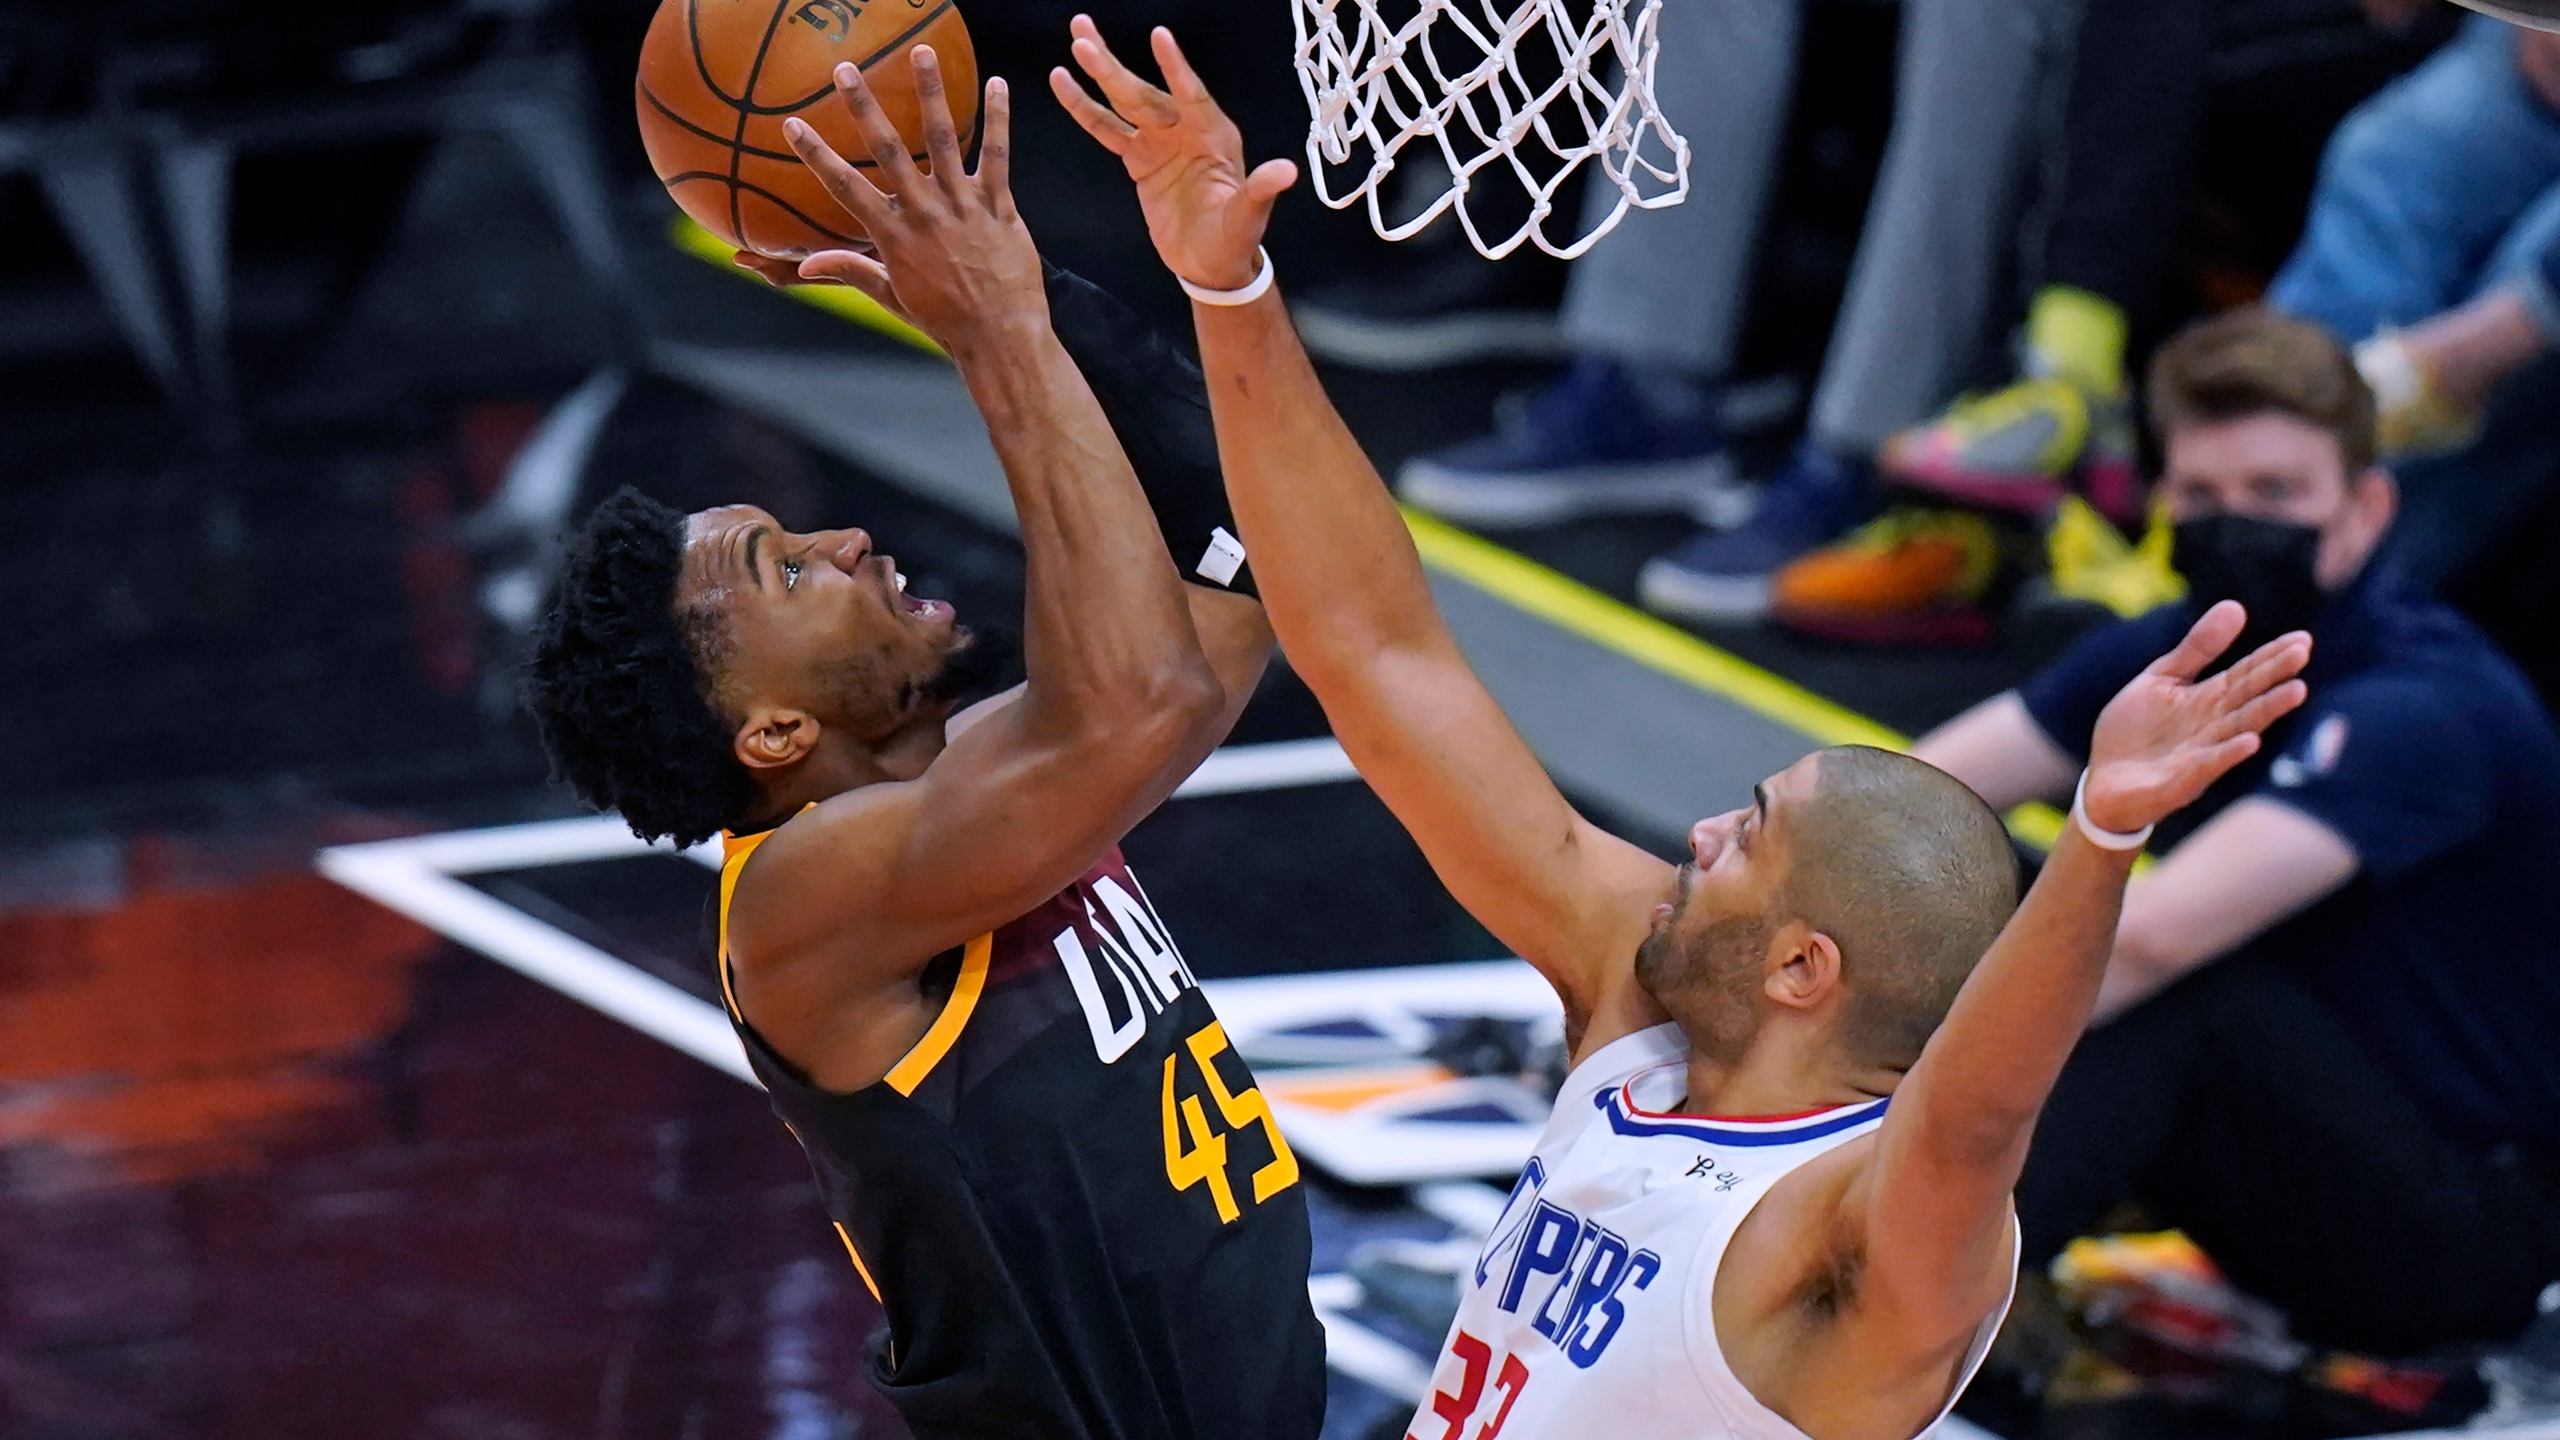 Los Angeles Clippers forward Nicolas Batum (33) defends as Utah Jazz guard Donovan Mitchell, left, goes to the basket during the first half of Game 2 of a second-round NBA basketball playoff series on June 10, 2021, in Salt Lake City. (Rick Bowmer / Associated Press)